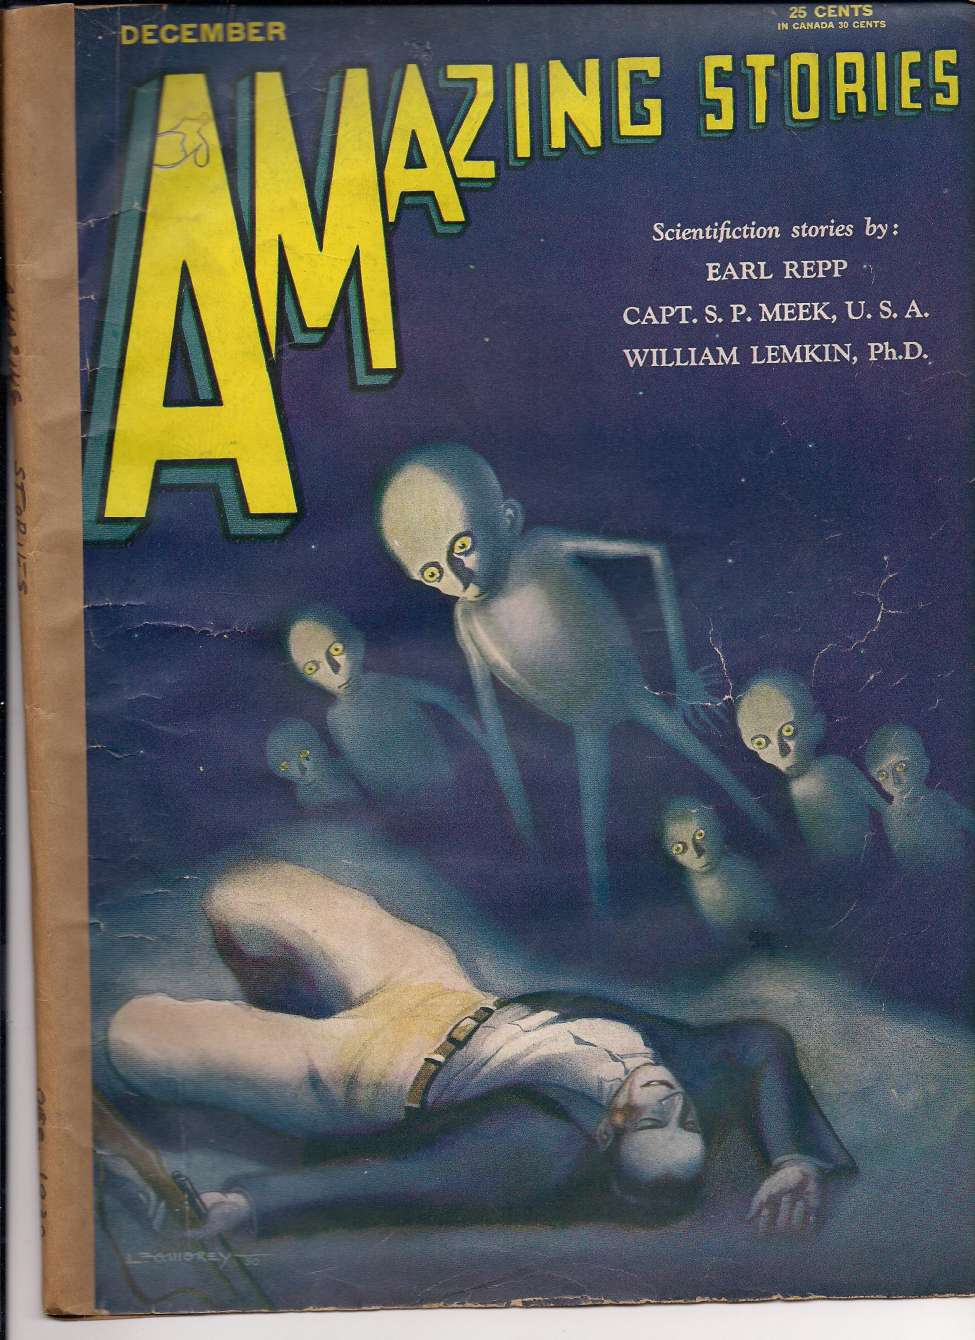 Comic Book Cover For Amazing Stories v05 09 - The Eclipse Special - William Lemkin, Ph.D